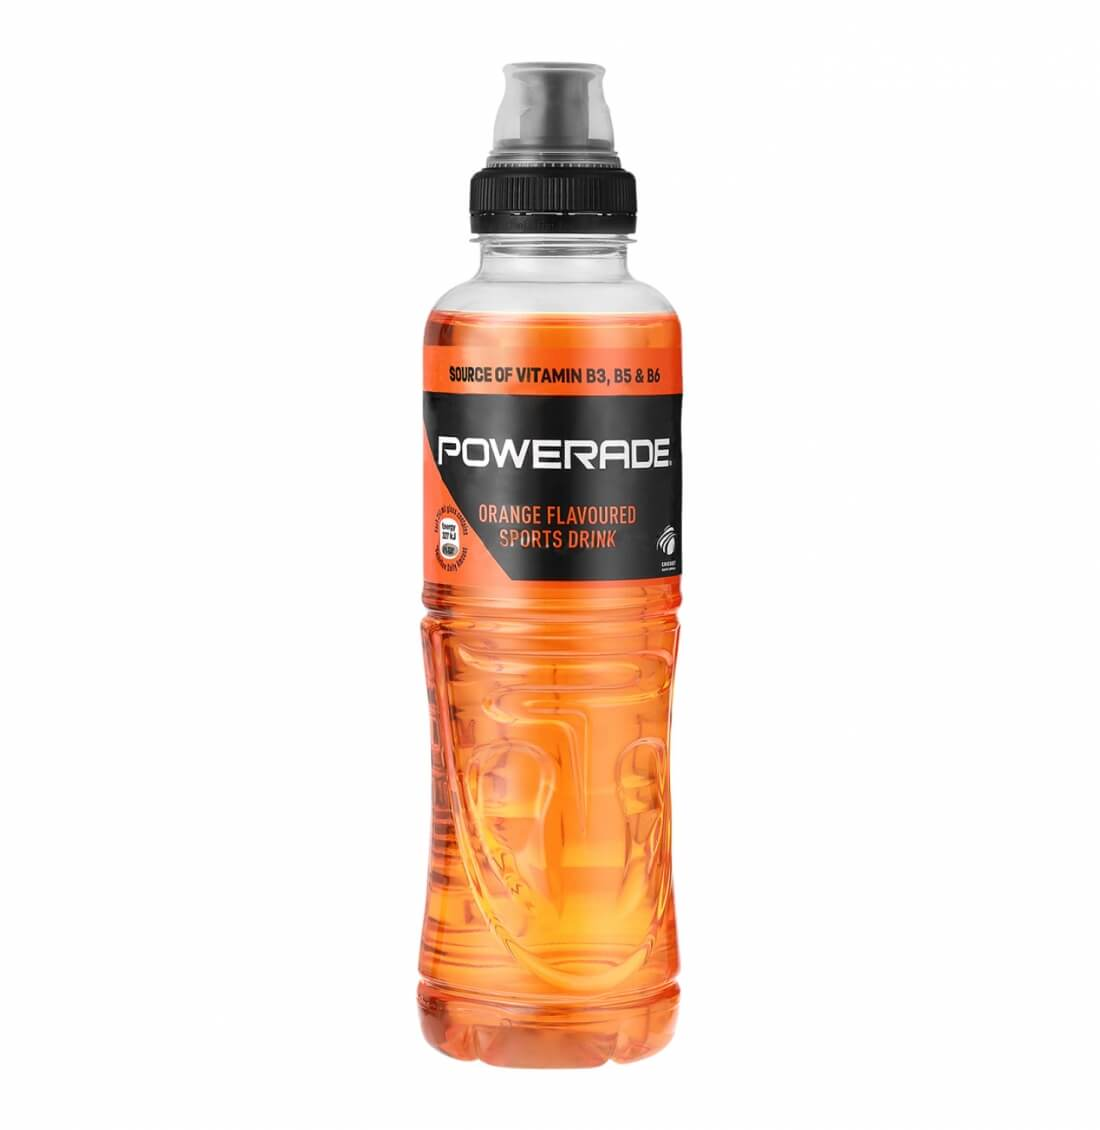 Powerade Orange